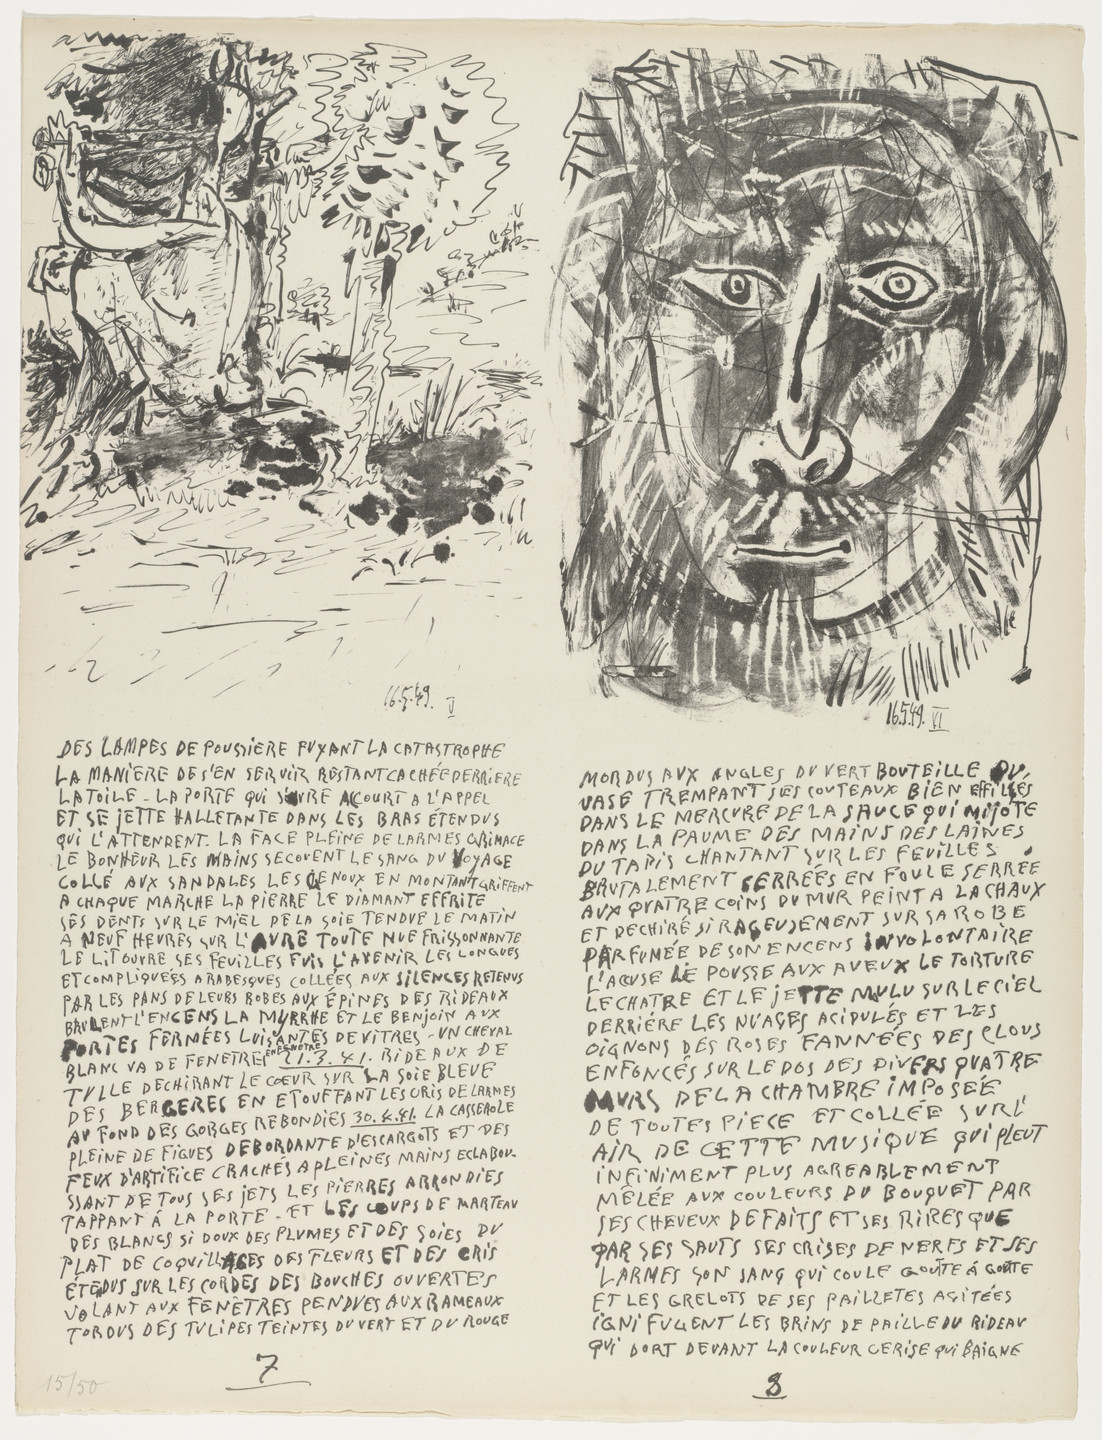 Pablo Picasso. In-text plates (folio 5) from Poèmes et lithographies. 1949, published 1954